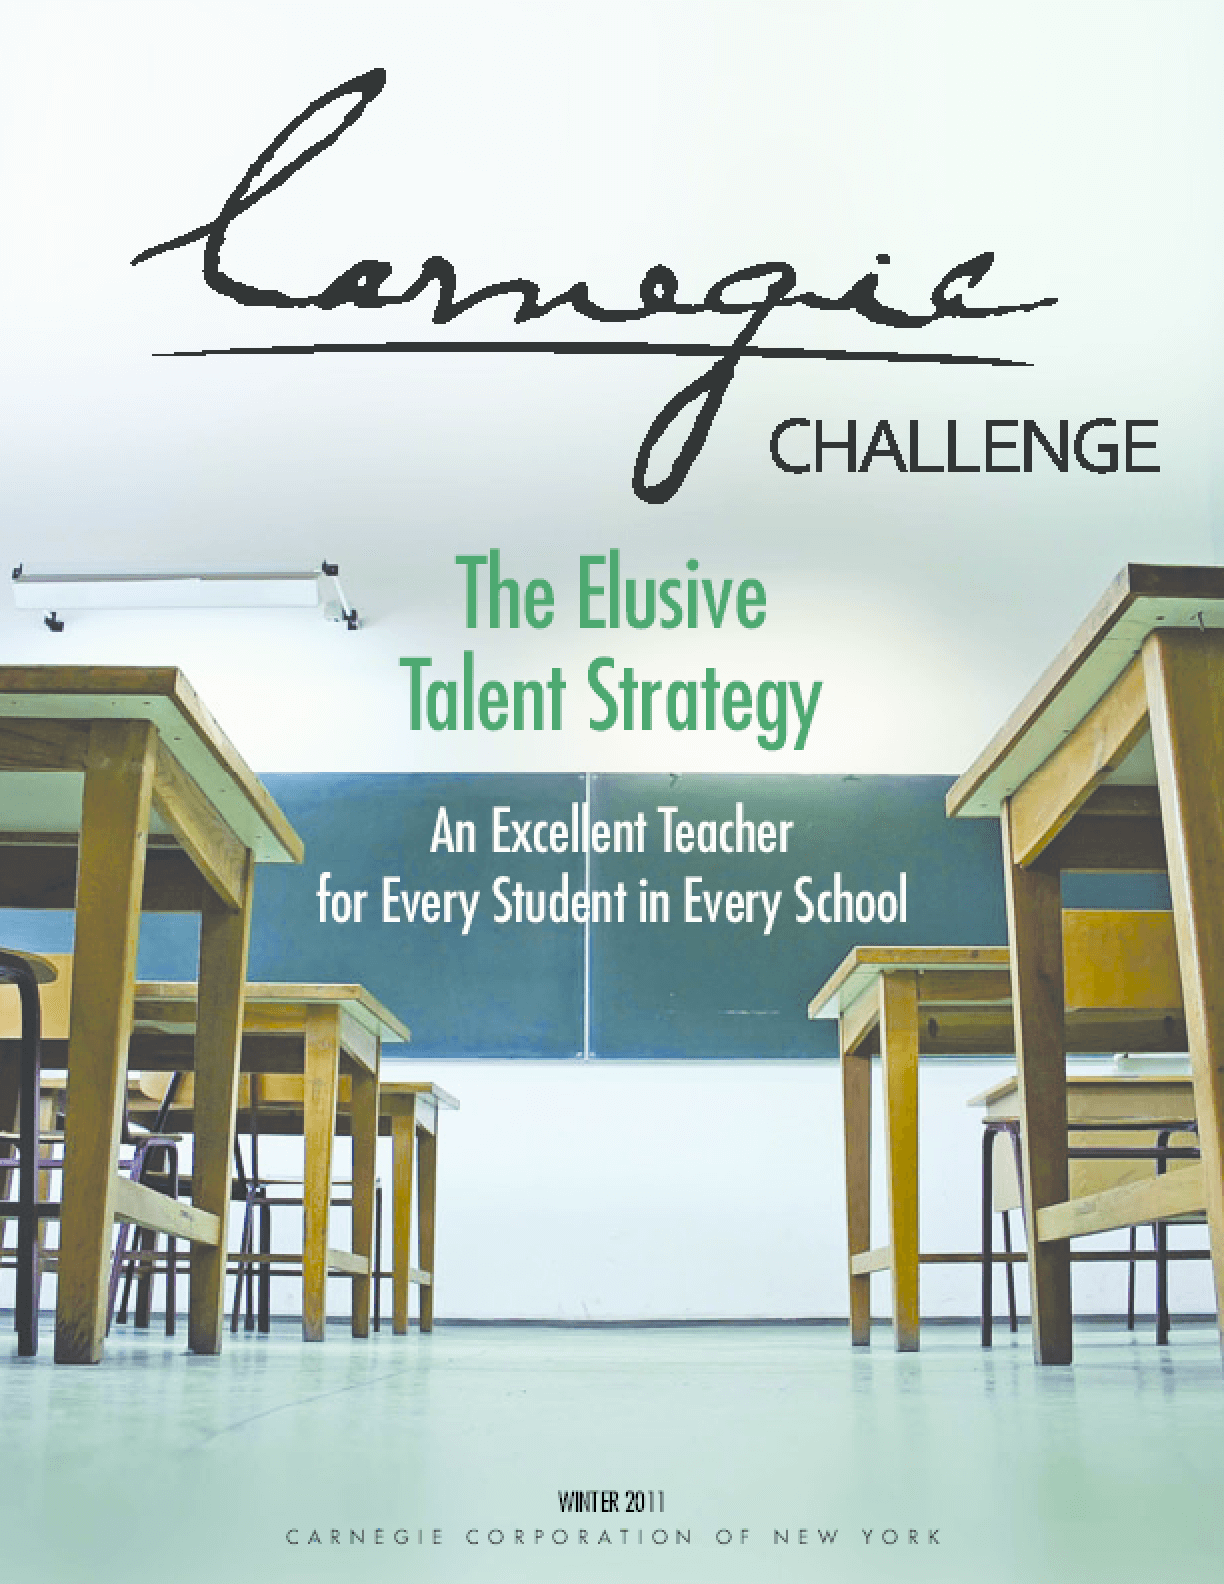 The Elusive Talent Strategy: An Excellent Teacher for Every Student in Every School